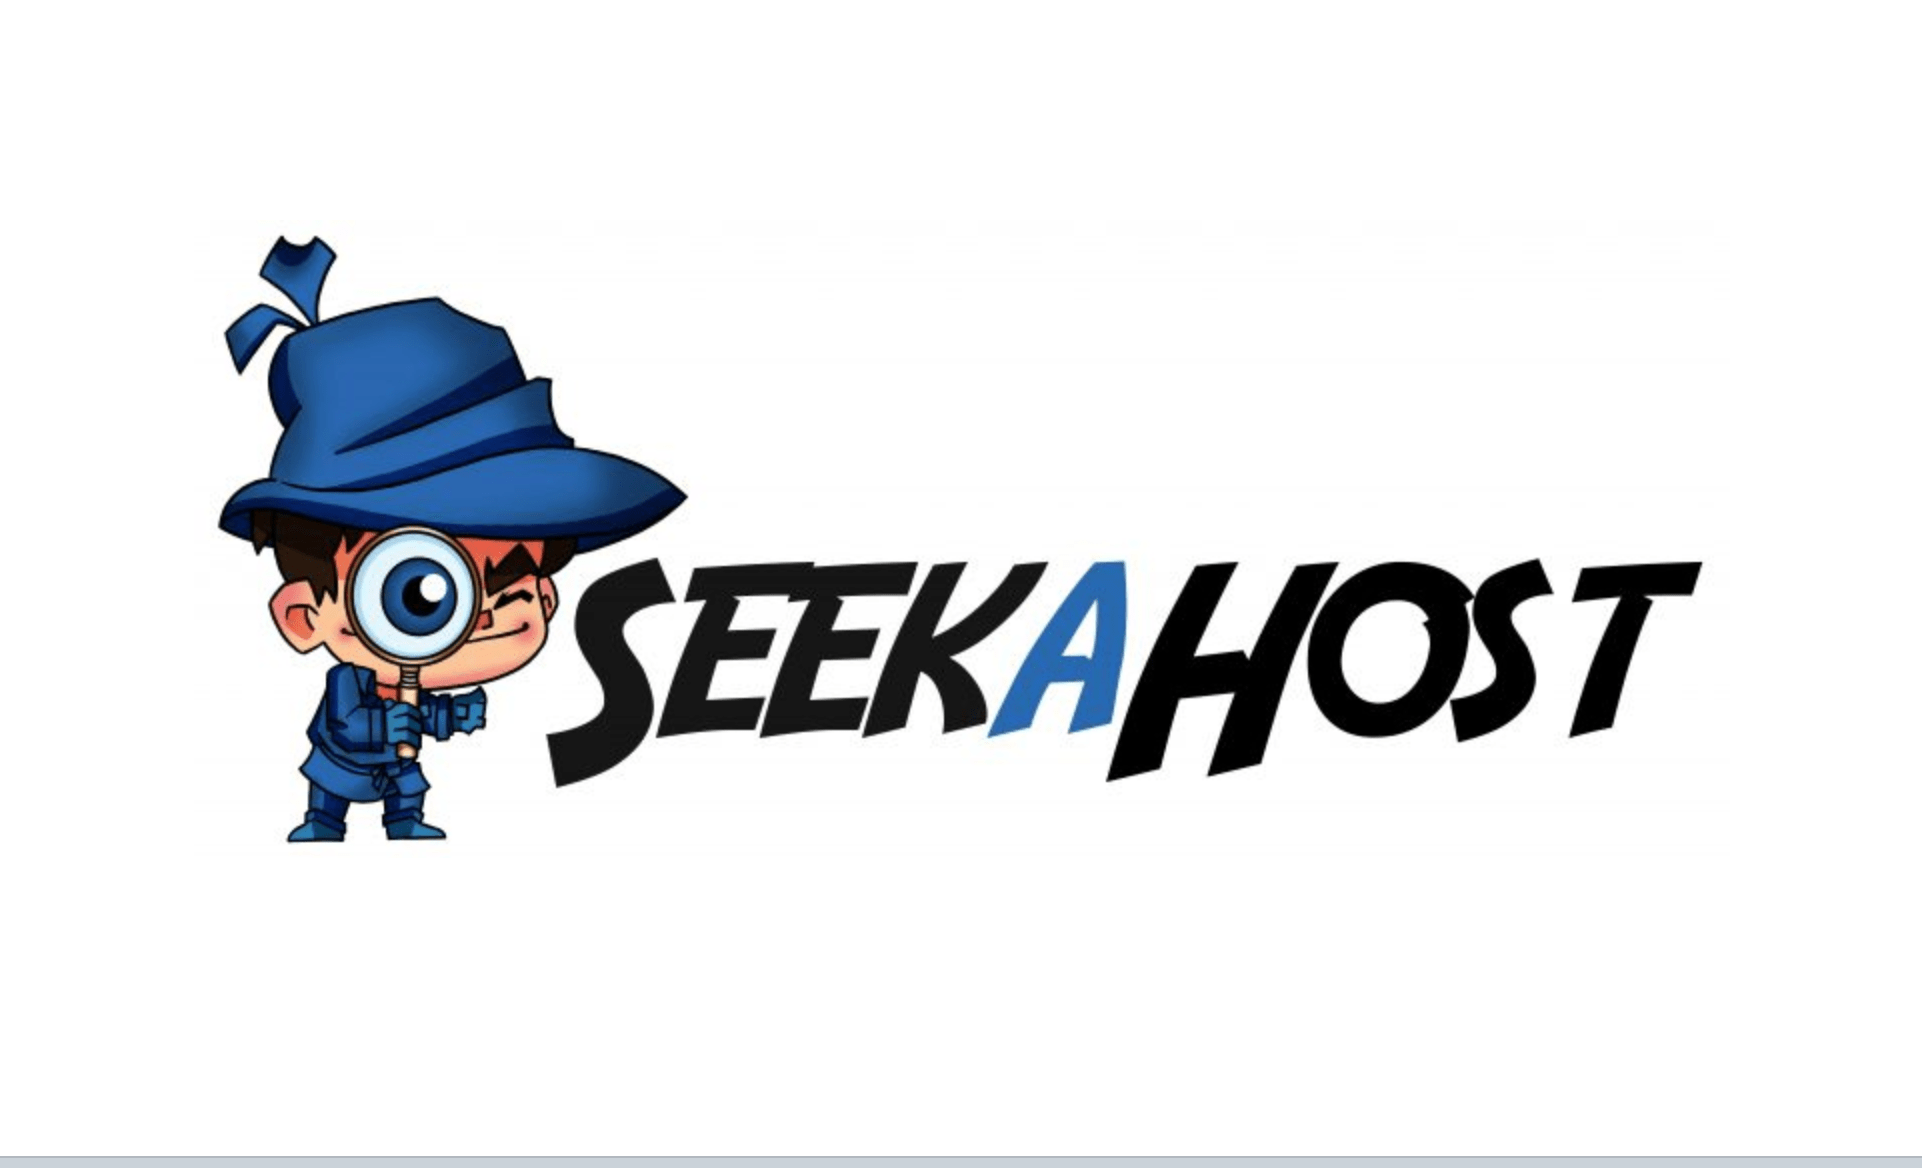 SeekaHost University Dedicated to educating people about digital skills for future